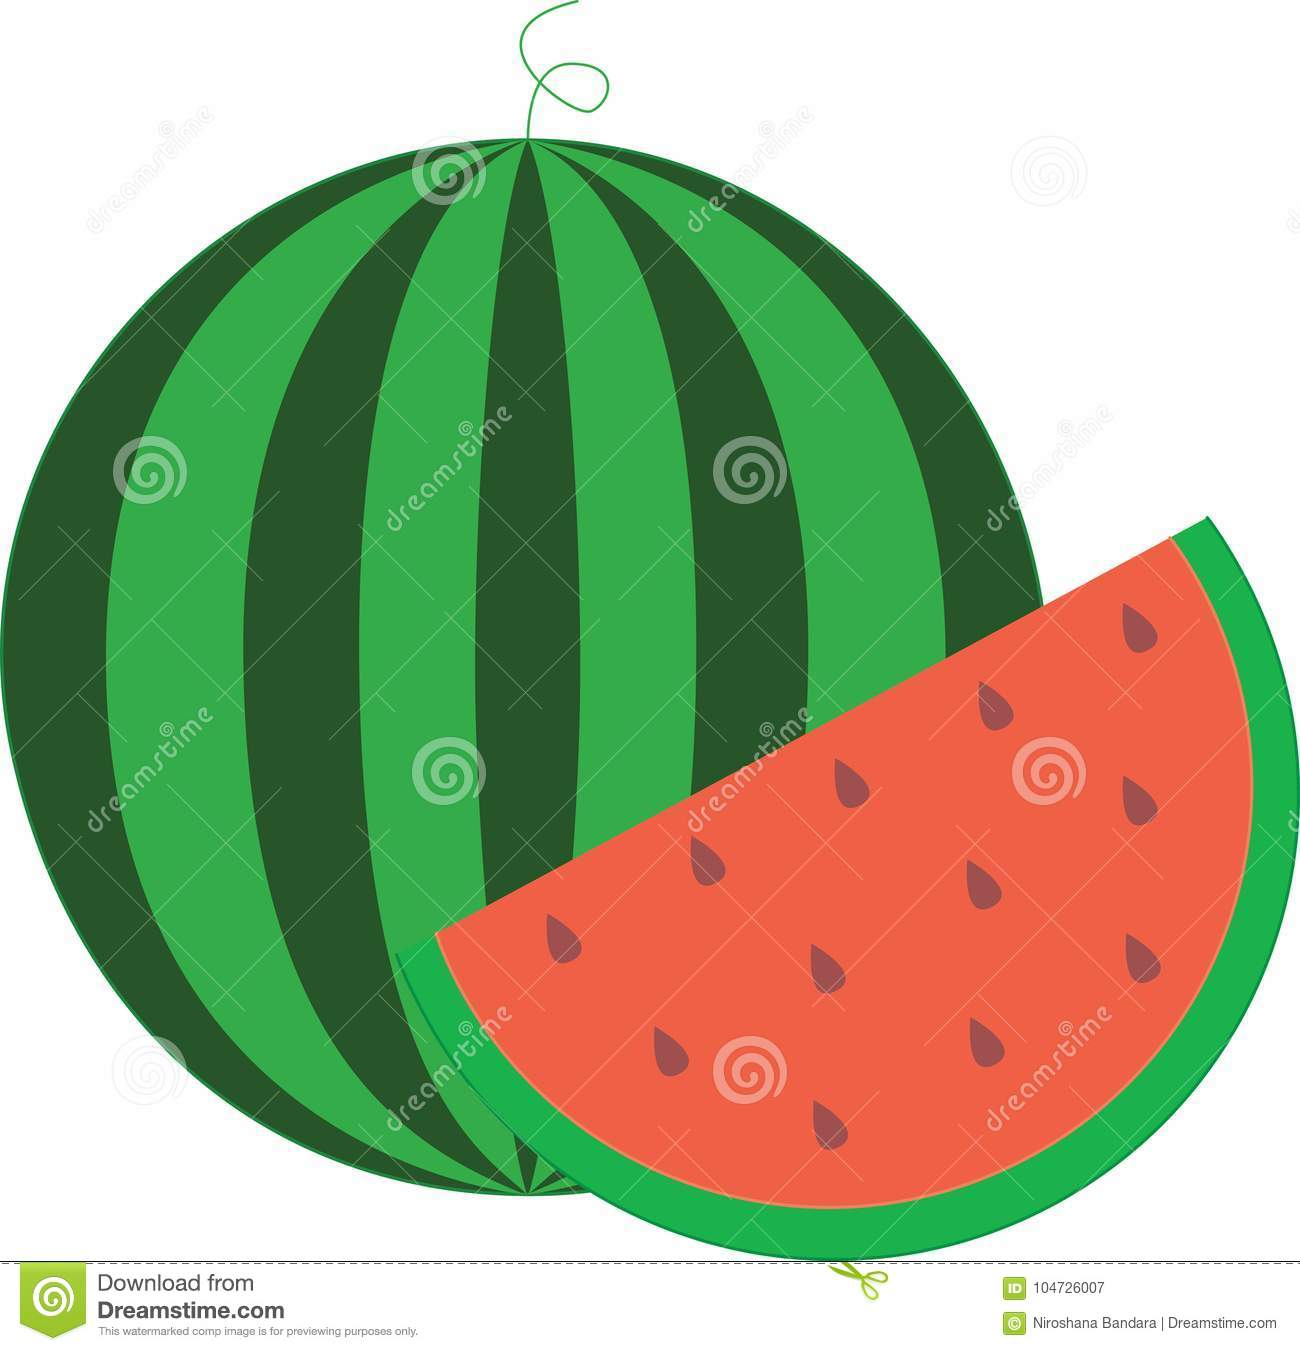 water melon a nutrient dense food